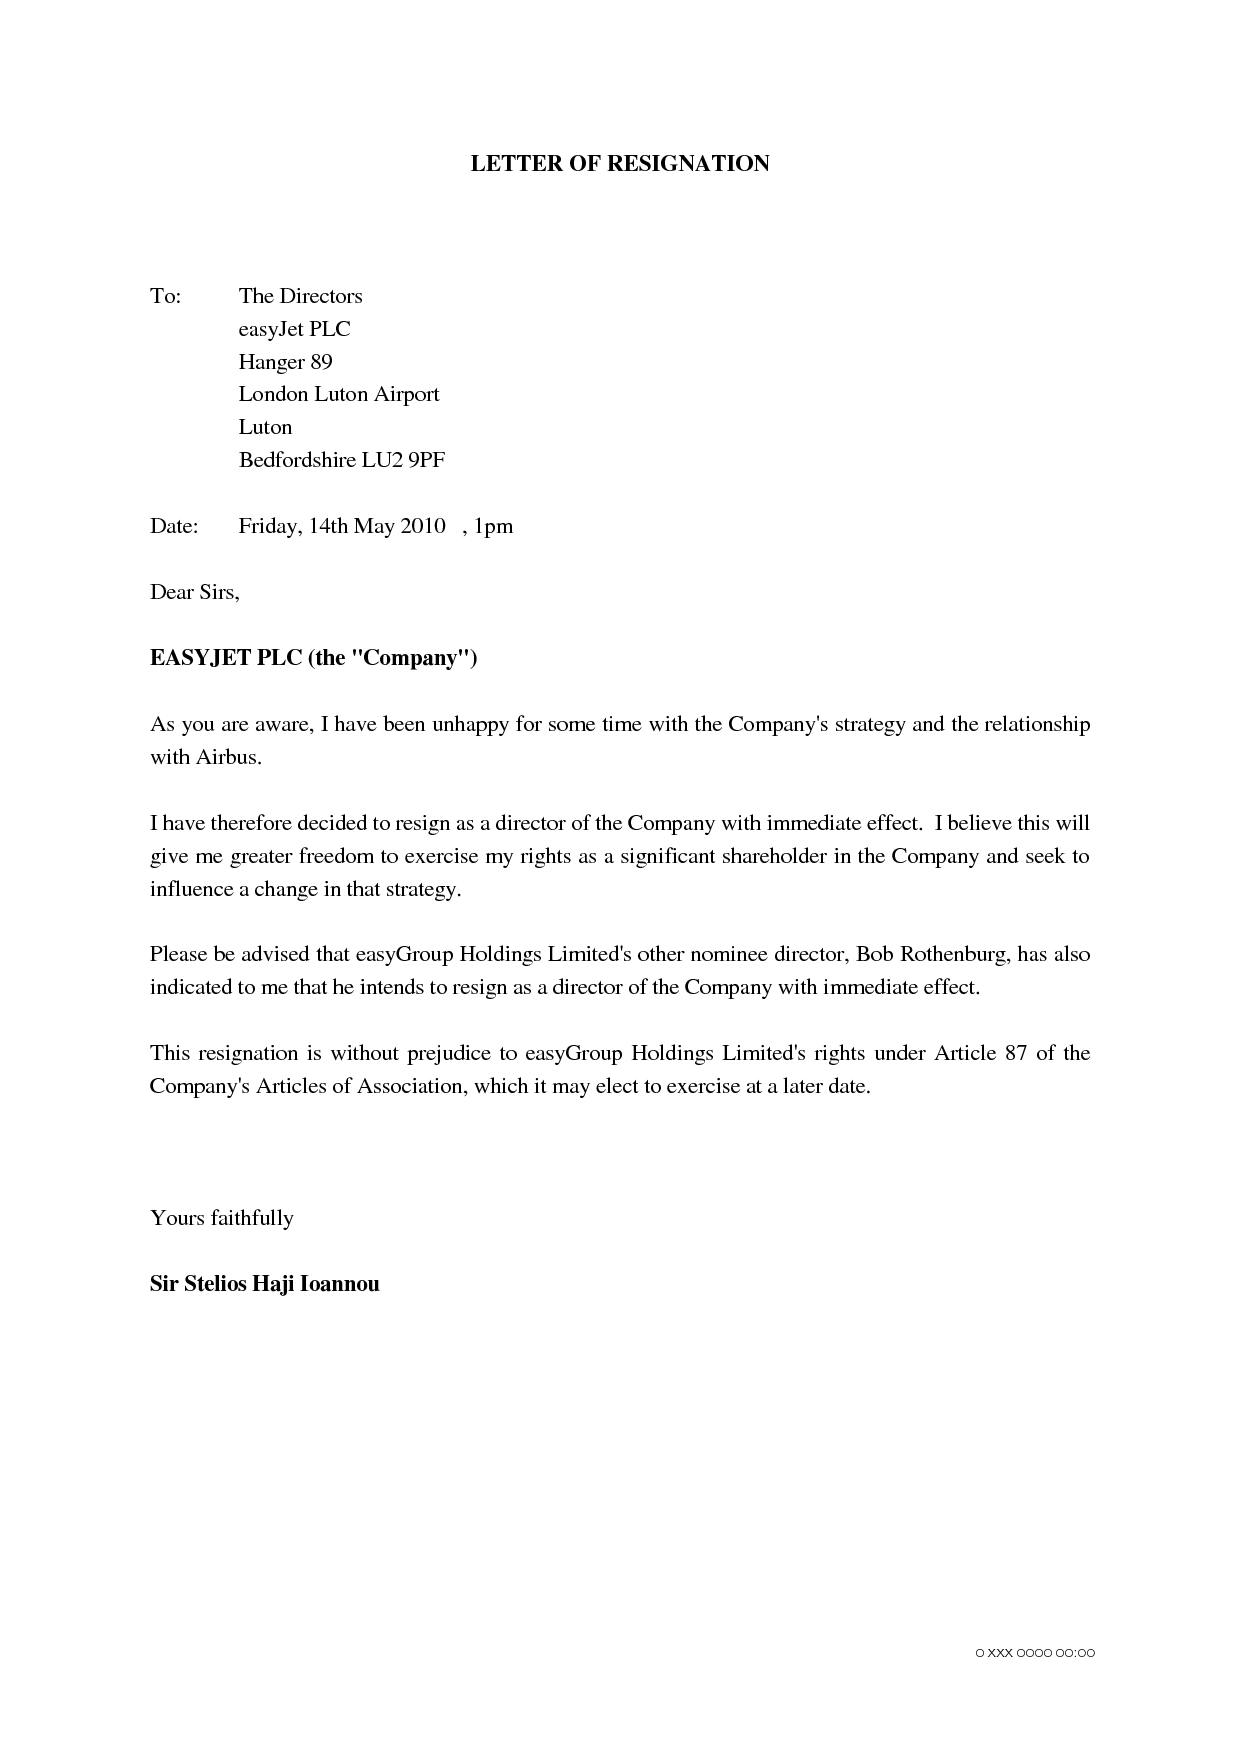 letter of resignation samples unhappy letter of resignation sample unhappy resignation letter 23081